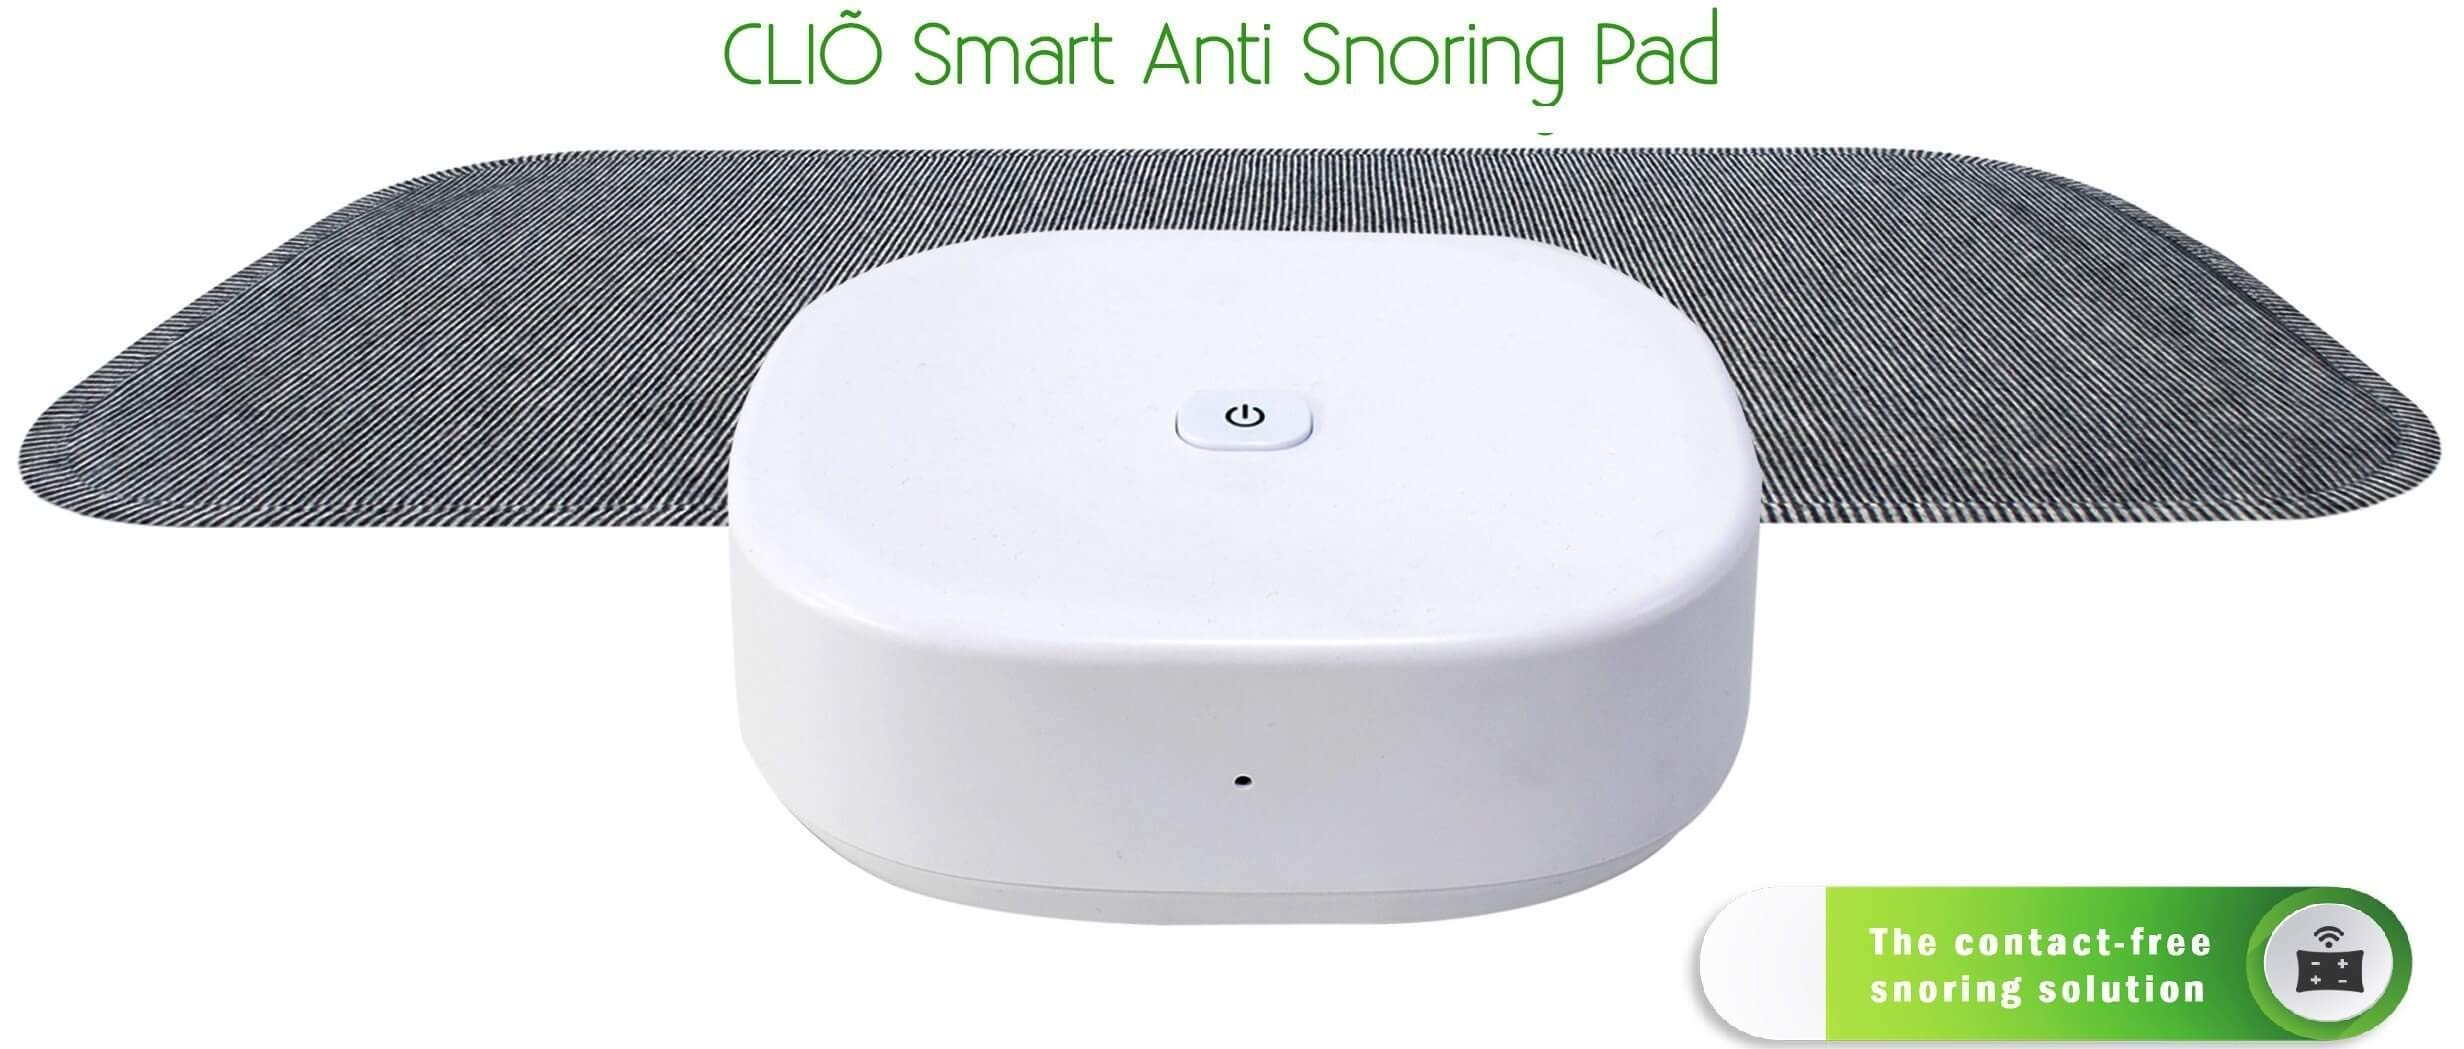 Cliõ Smart Anti Snoring Solution Stop Snore Stopper Non Invasive Devices No Strap No Mouthpiece aids Auto Inflatable Insert Pad Pillow Contact-Free Effective Silent Comfortable for Men, Women, Kids